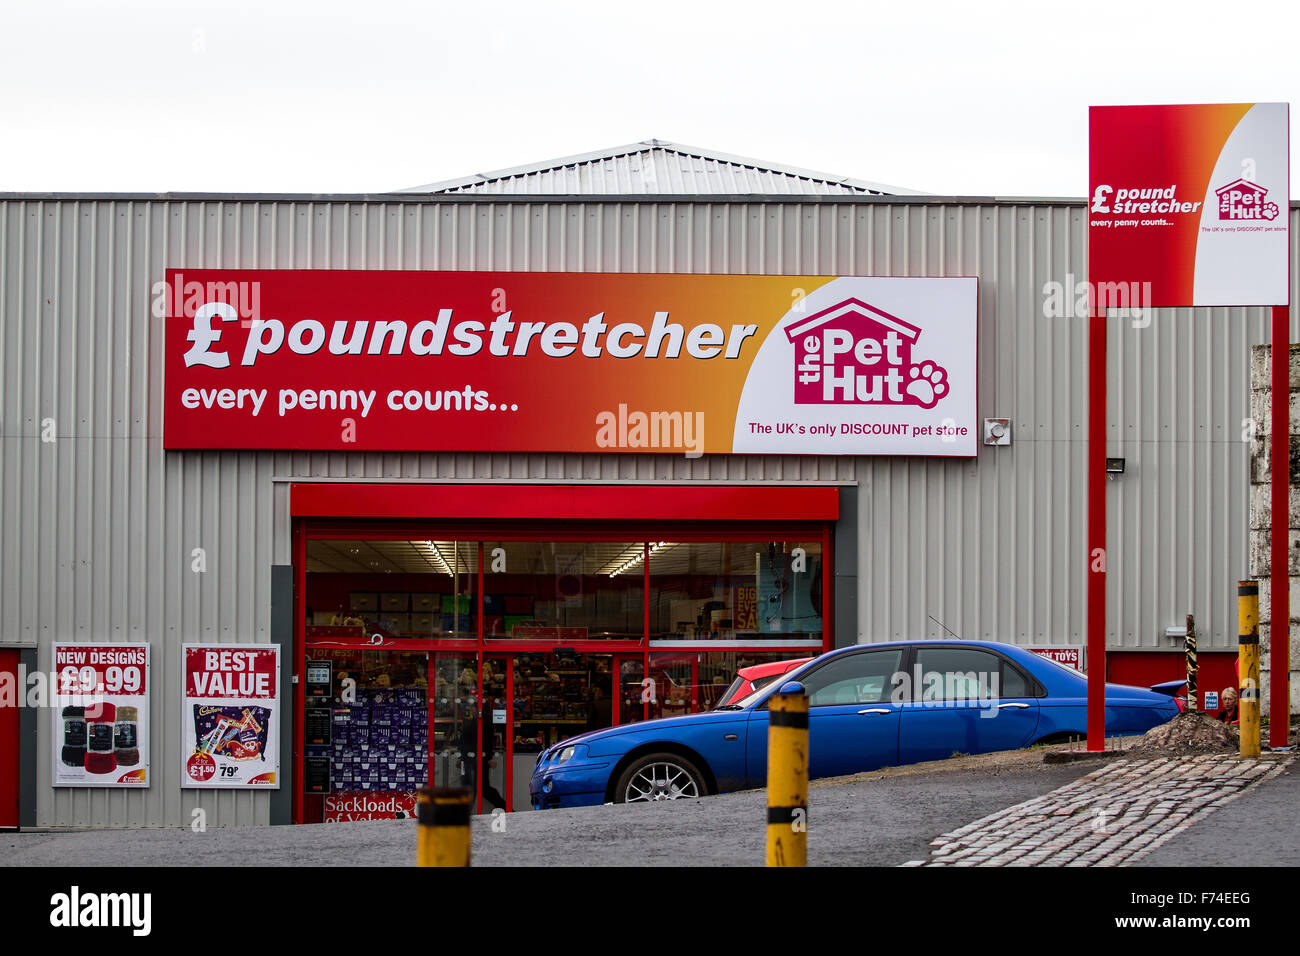 £ Poundstretcher discount retail store along the Lochee Road in Dundee, UK - Stock Image